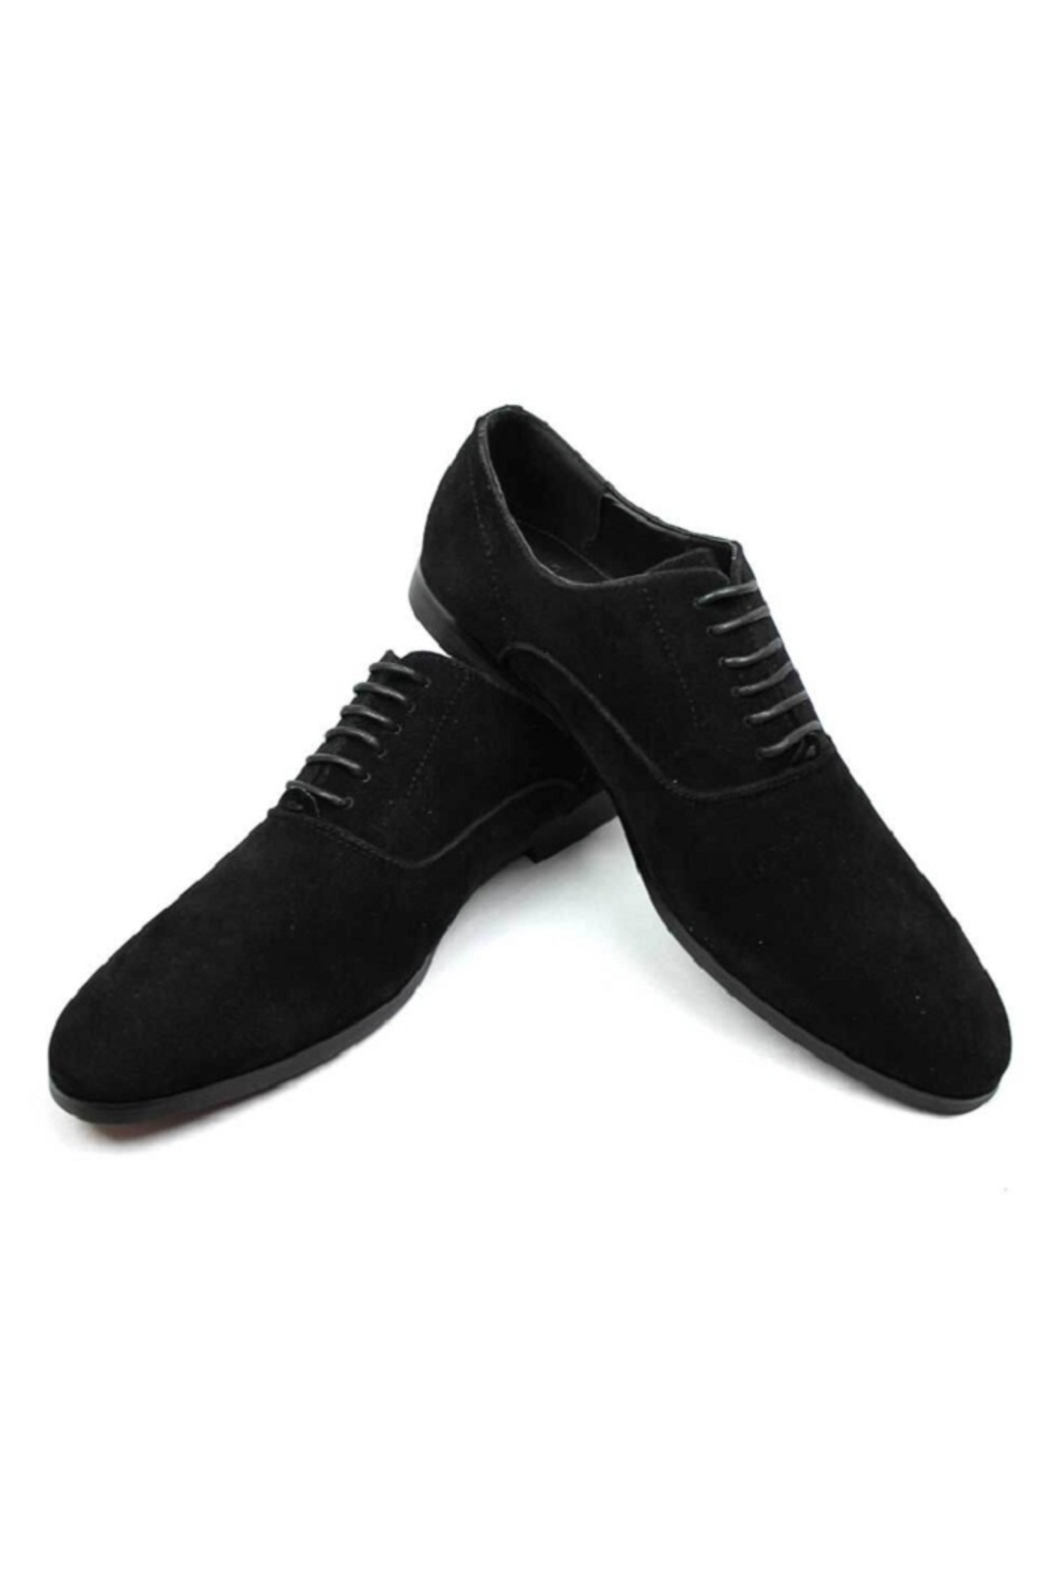 AZM Black Suede Round Toe Dress Shoes - Front Full Image